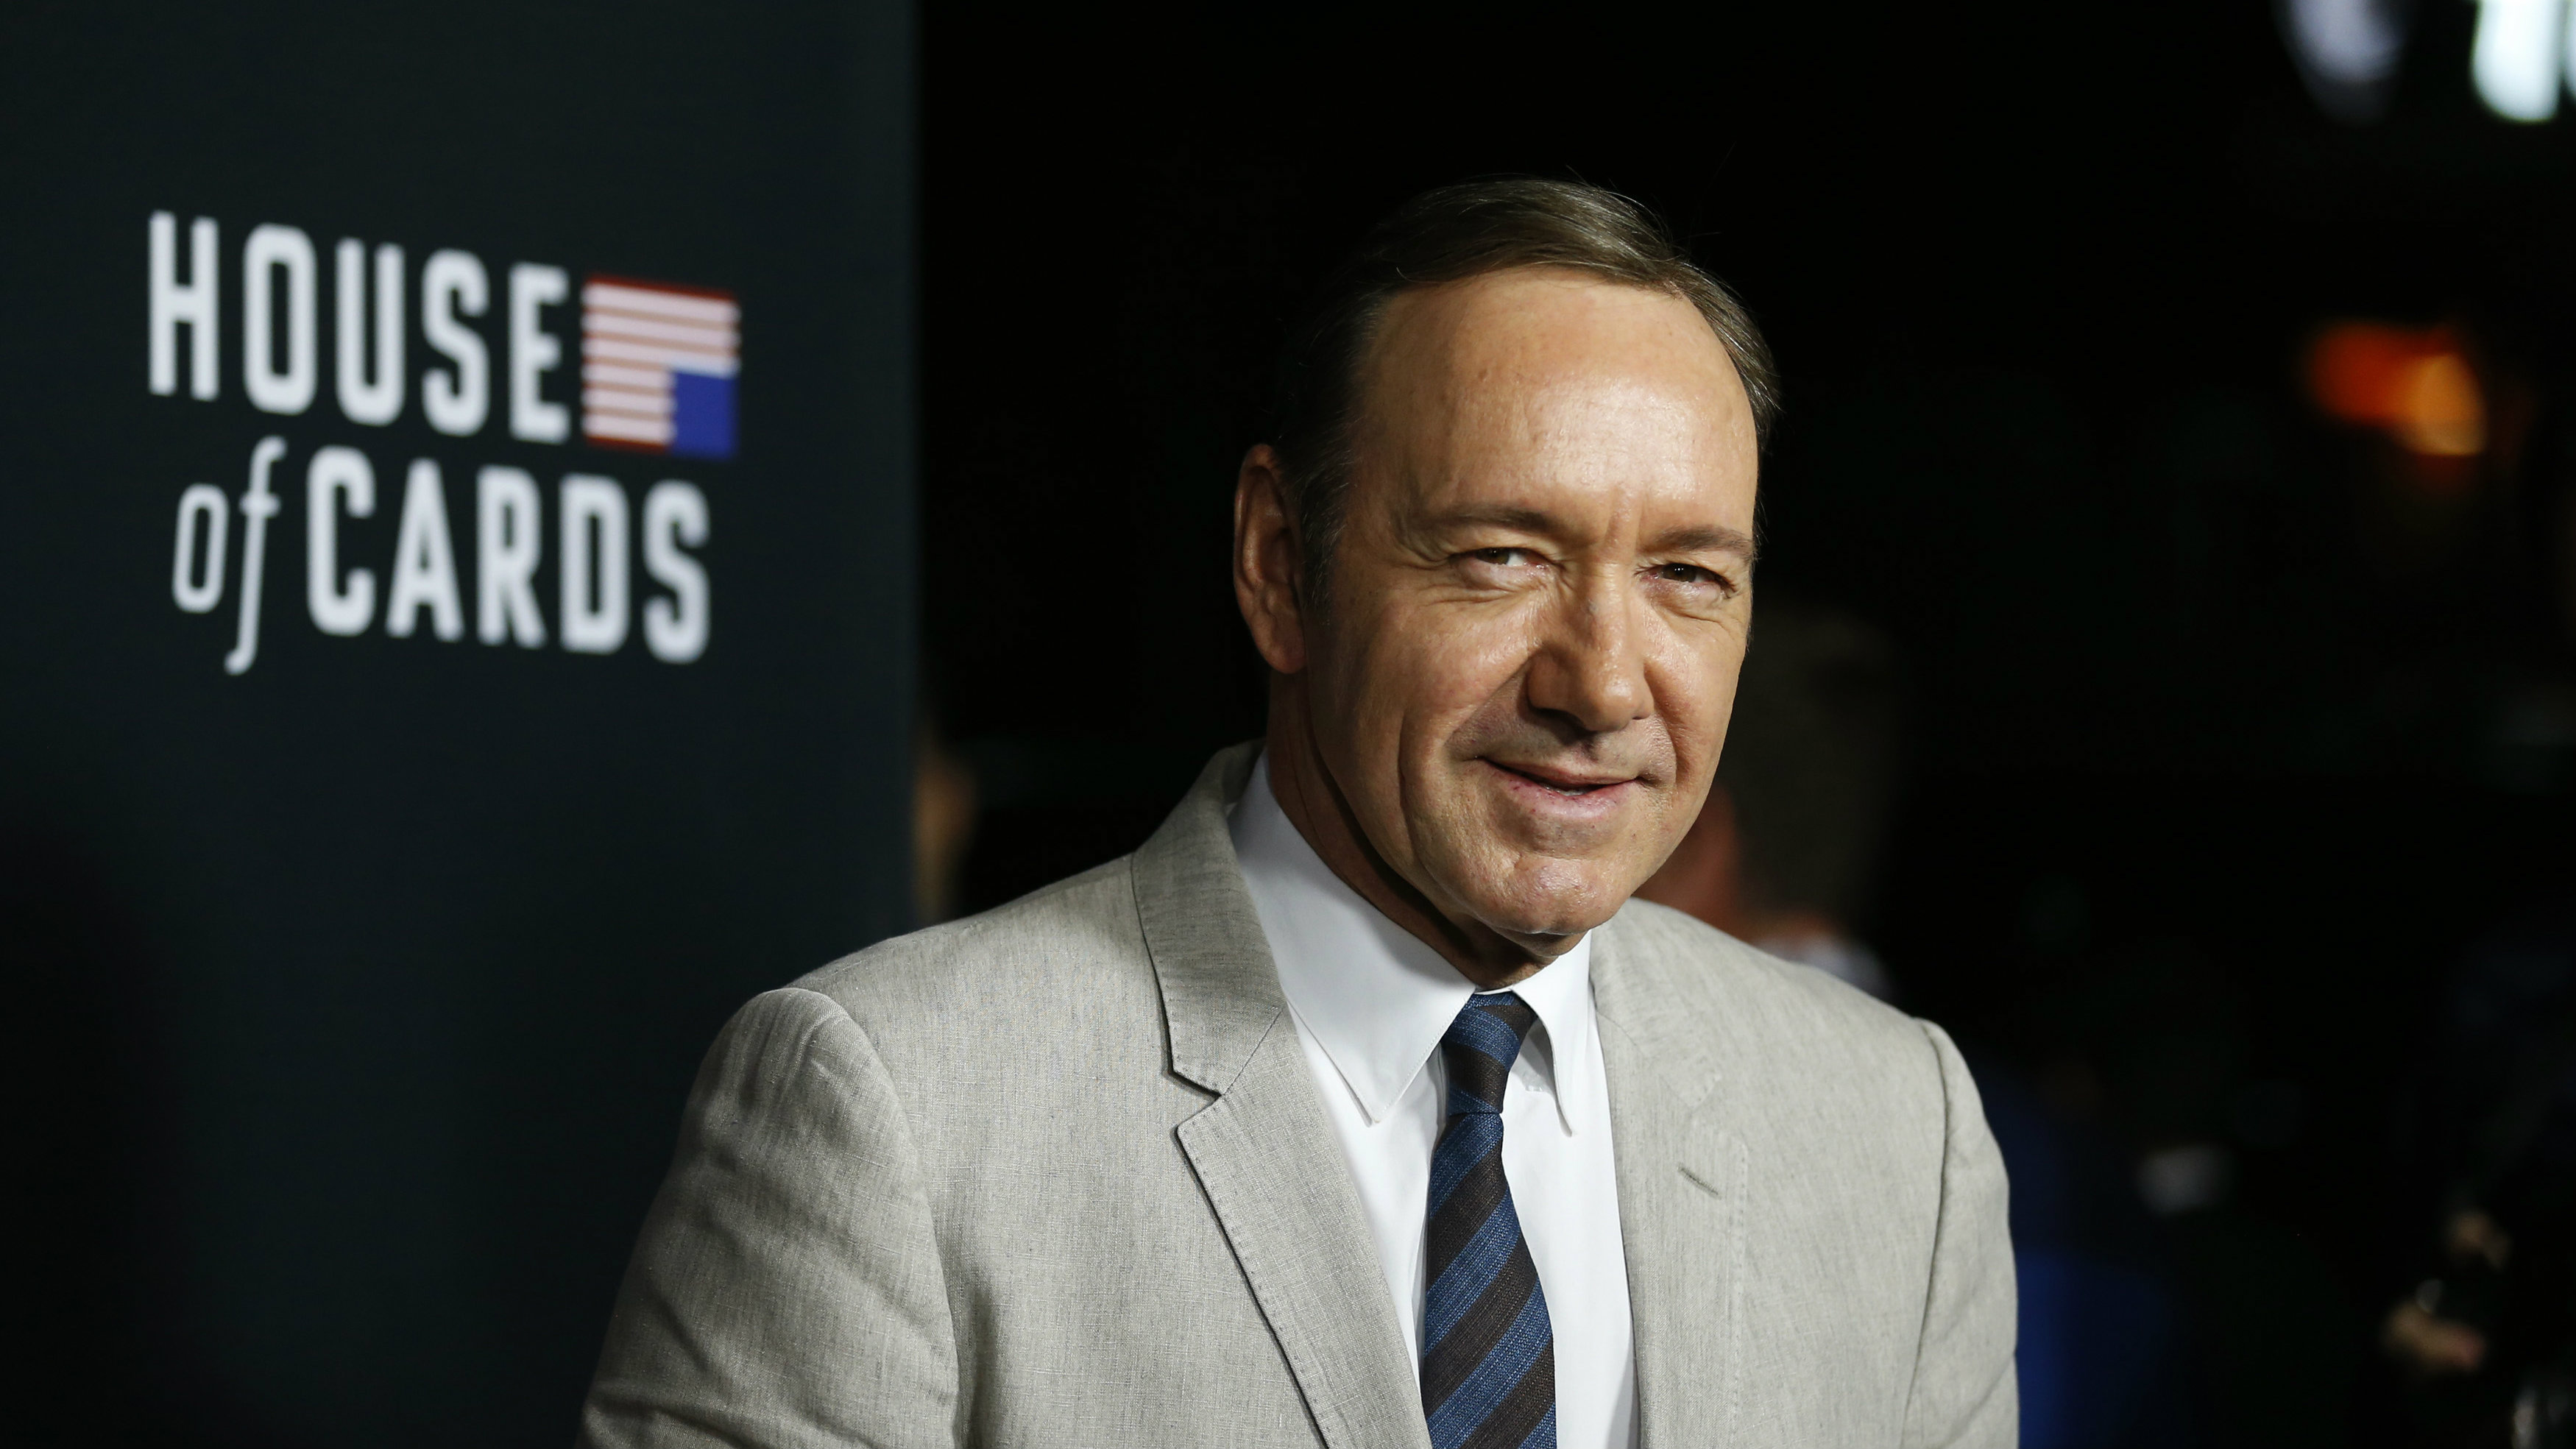 """Cast member Kevin Spacey poses at the premiere for the second season of the television series """"House of Cards"""" at the Directors Guild of America in Los Angeles, California February 13, 2014."""